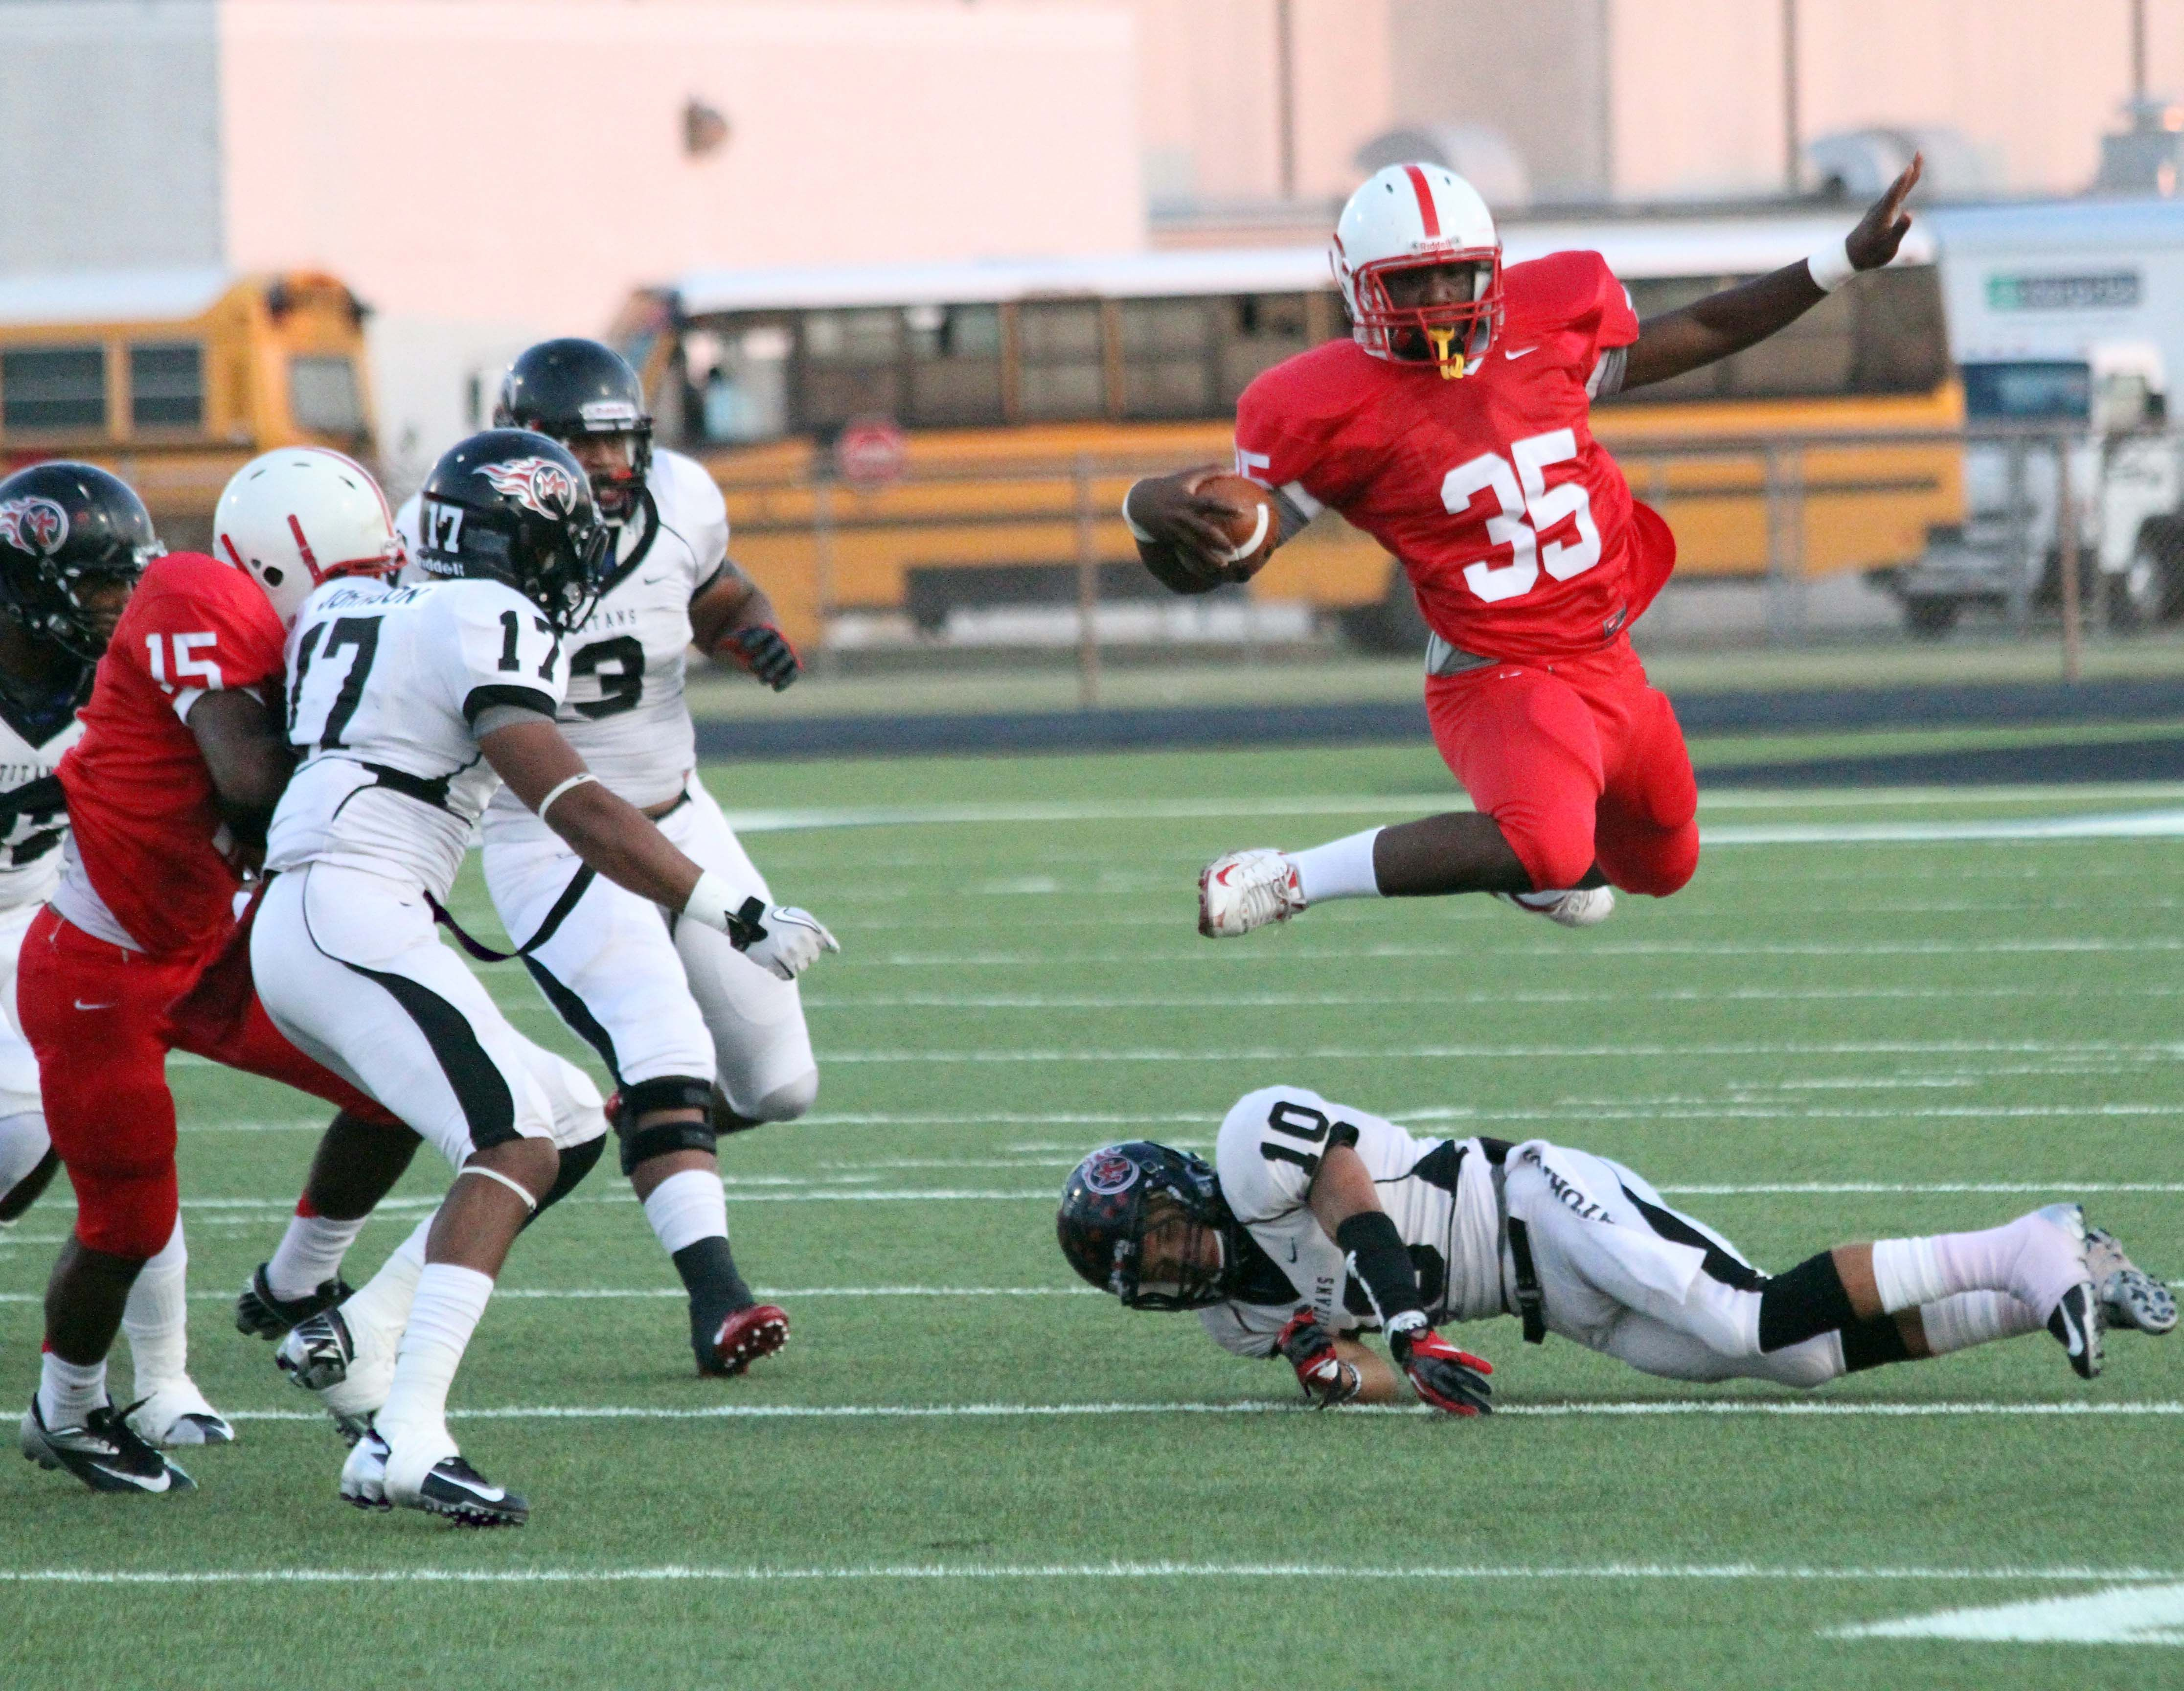 Sports, Football, Stop action, Rule of Thirds. Bellaire